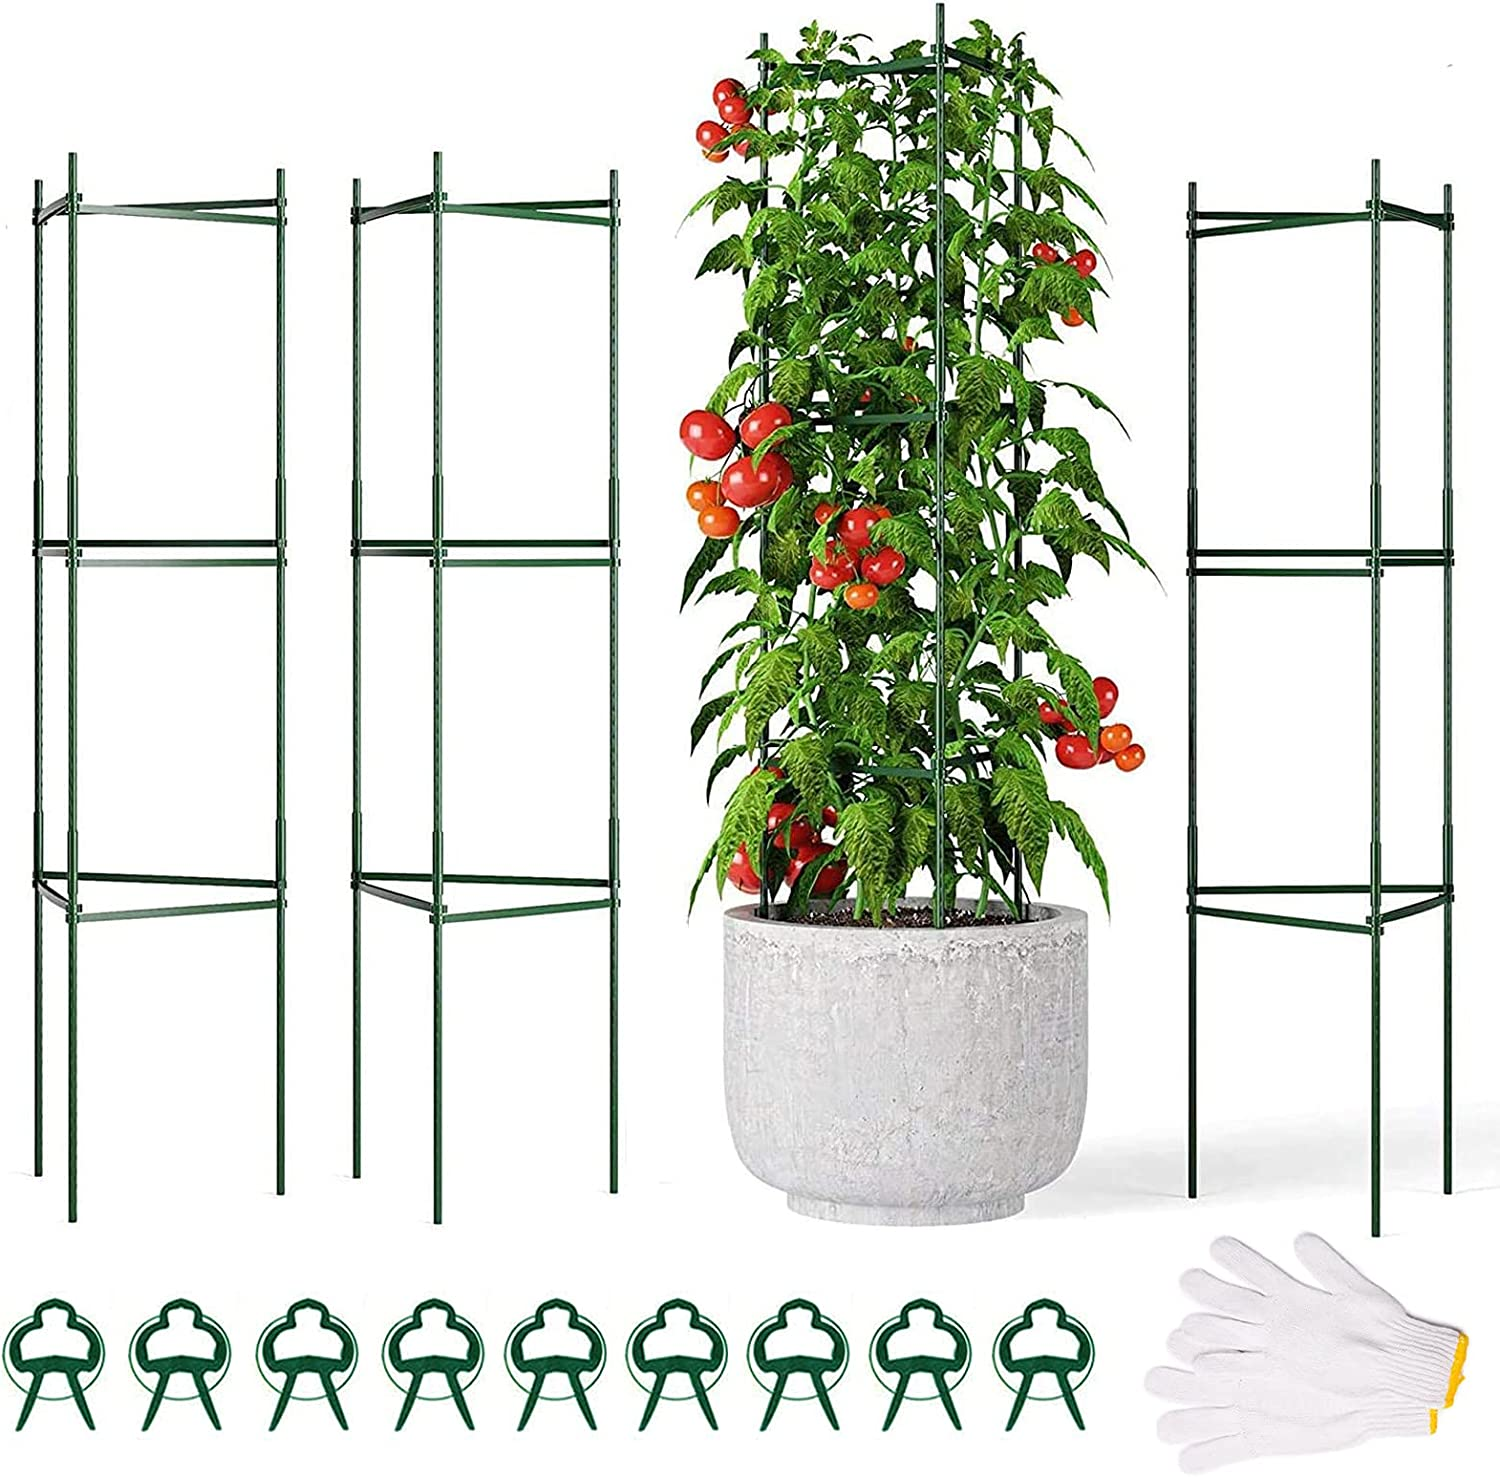 """Outopest Tomato Cage, 3 Pack Plant Support Cages with 9Pcs Clips and A Pair of Gloves, 47""""Assembled Tomato Chili Rose Plant Cage, Steel Core Stakes Trellis for Garden and Vertical Climbing Plants"""